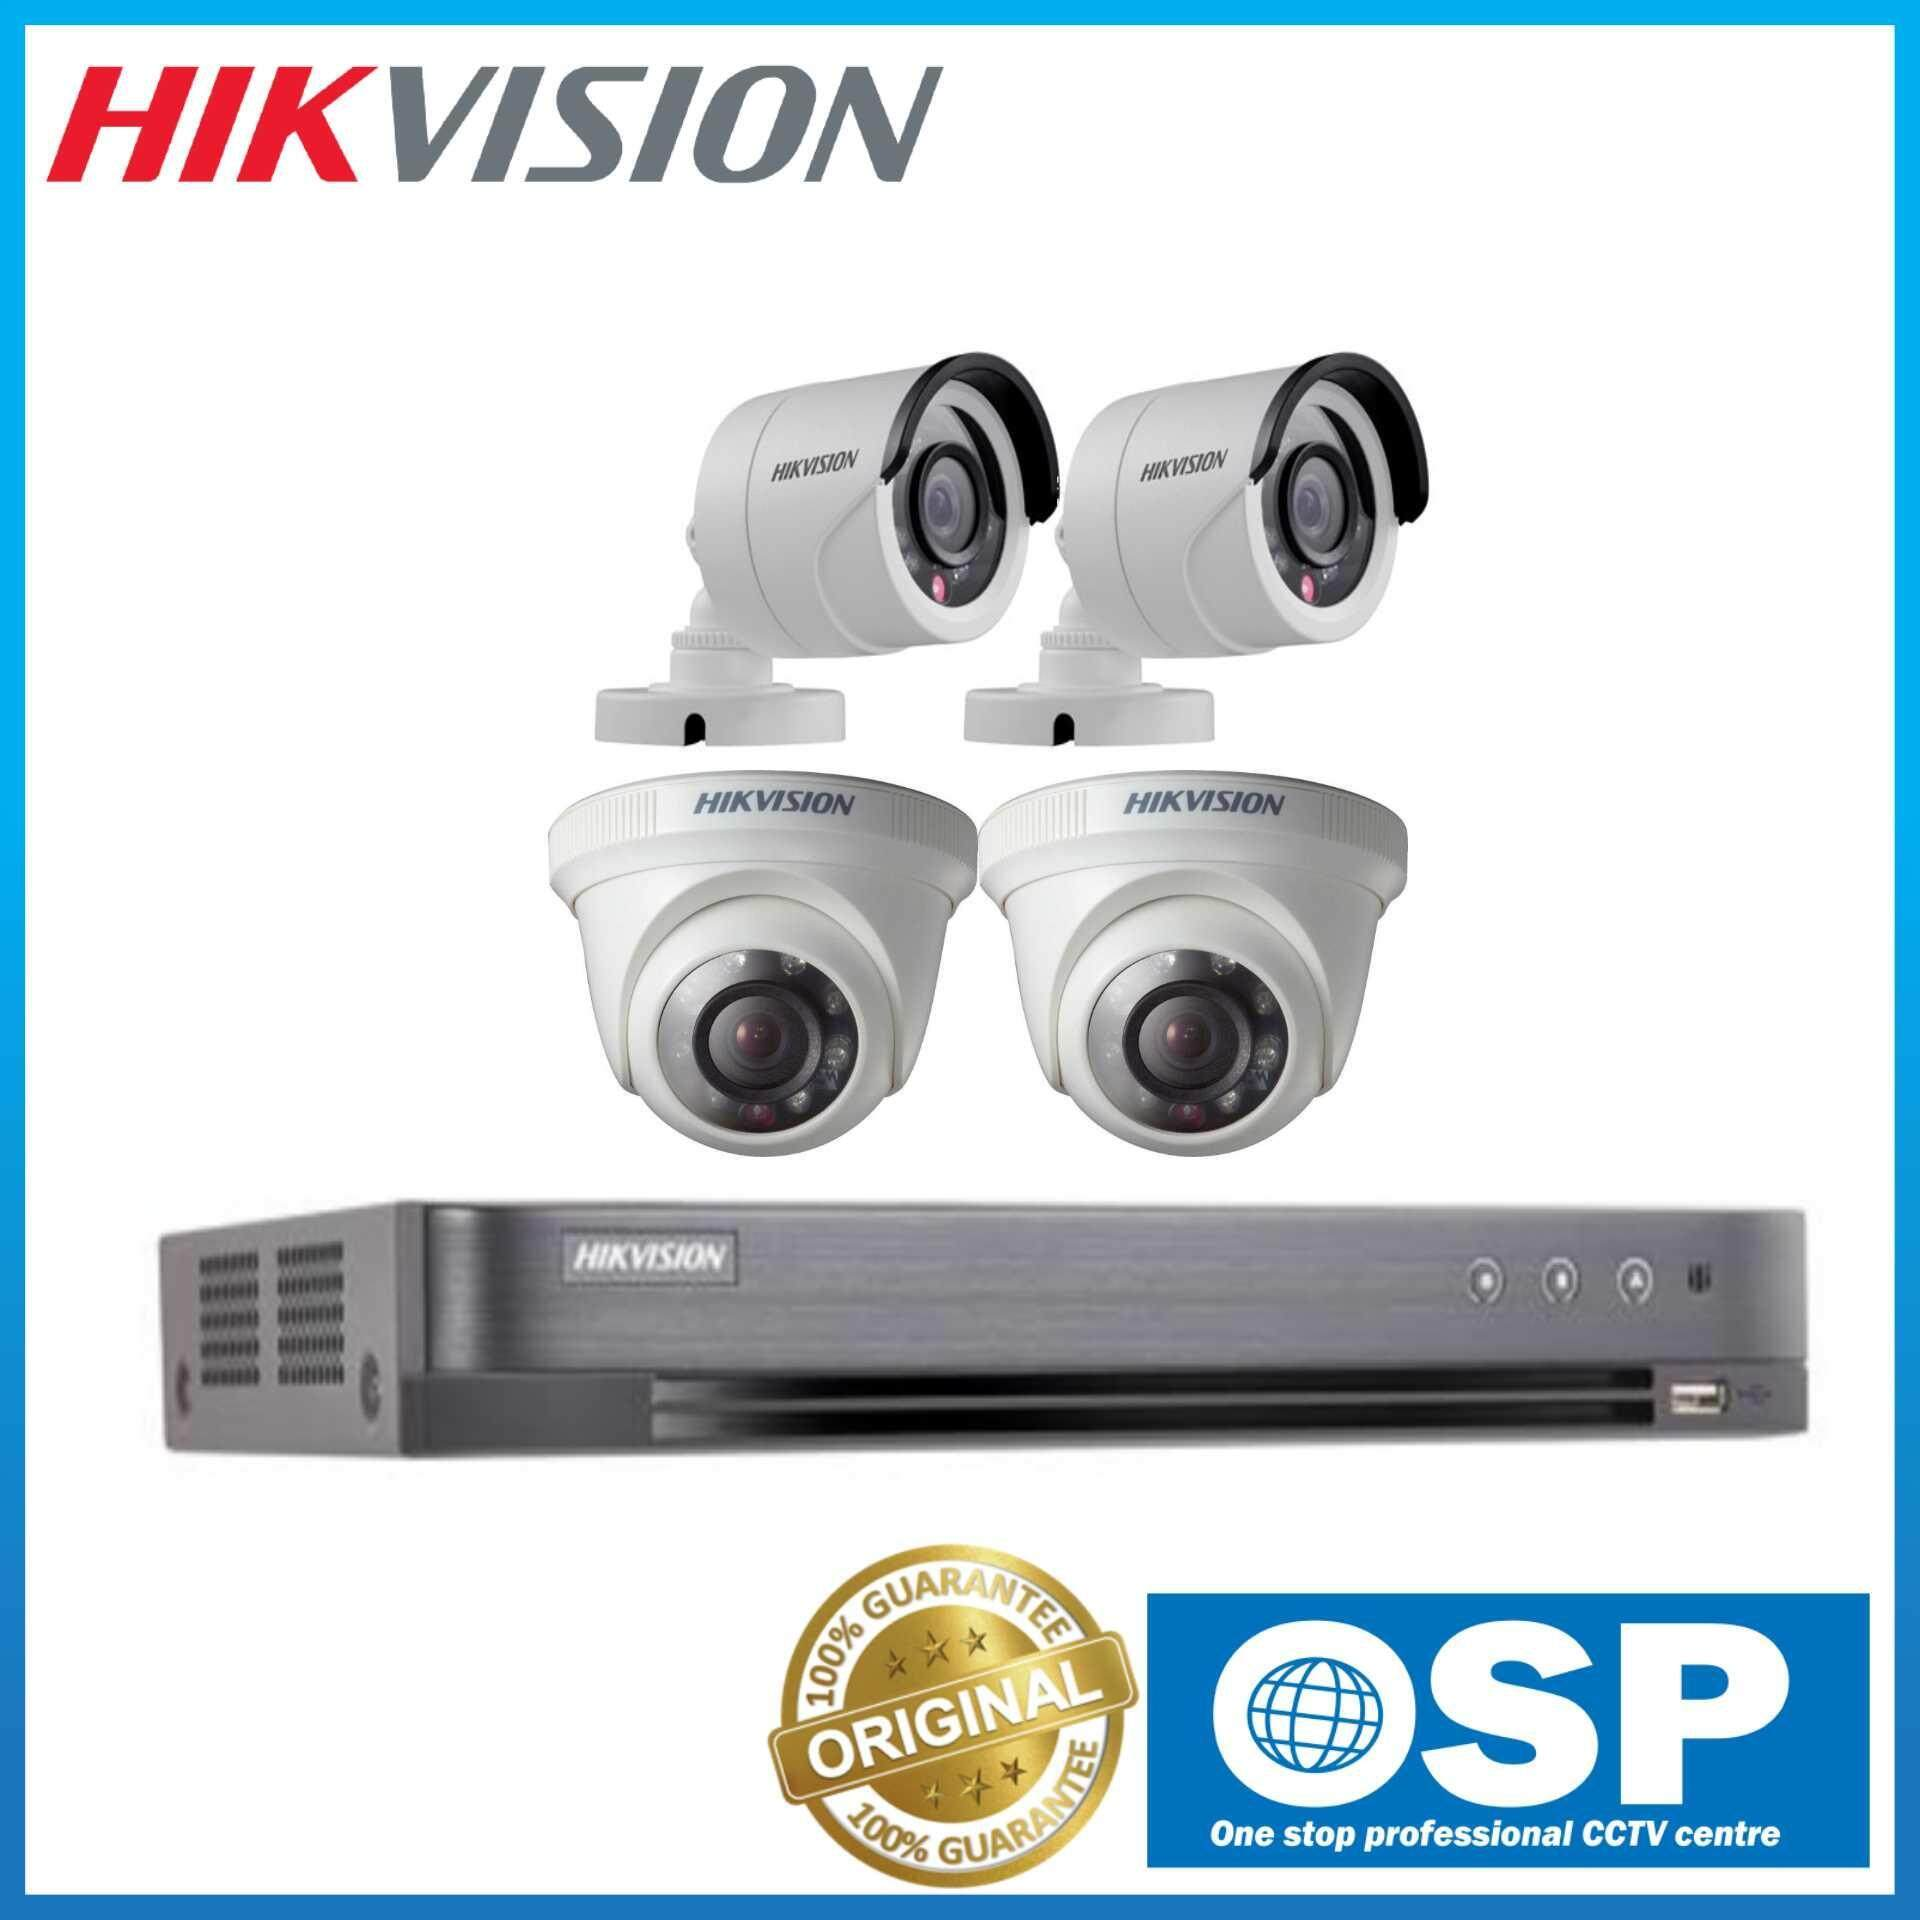 Hikvision Ds-7204hqhi-K1 4ch 2mp 1080p Analog Full Hd Cctv Package By One Stop Professional Cctv Centre.